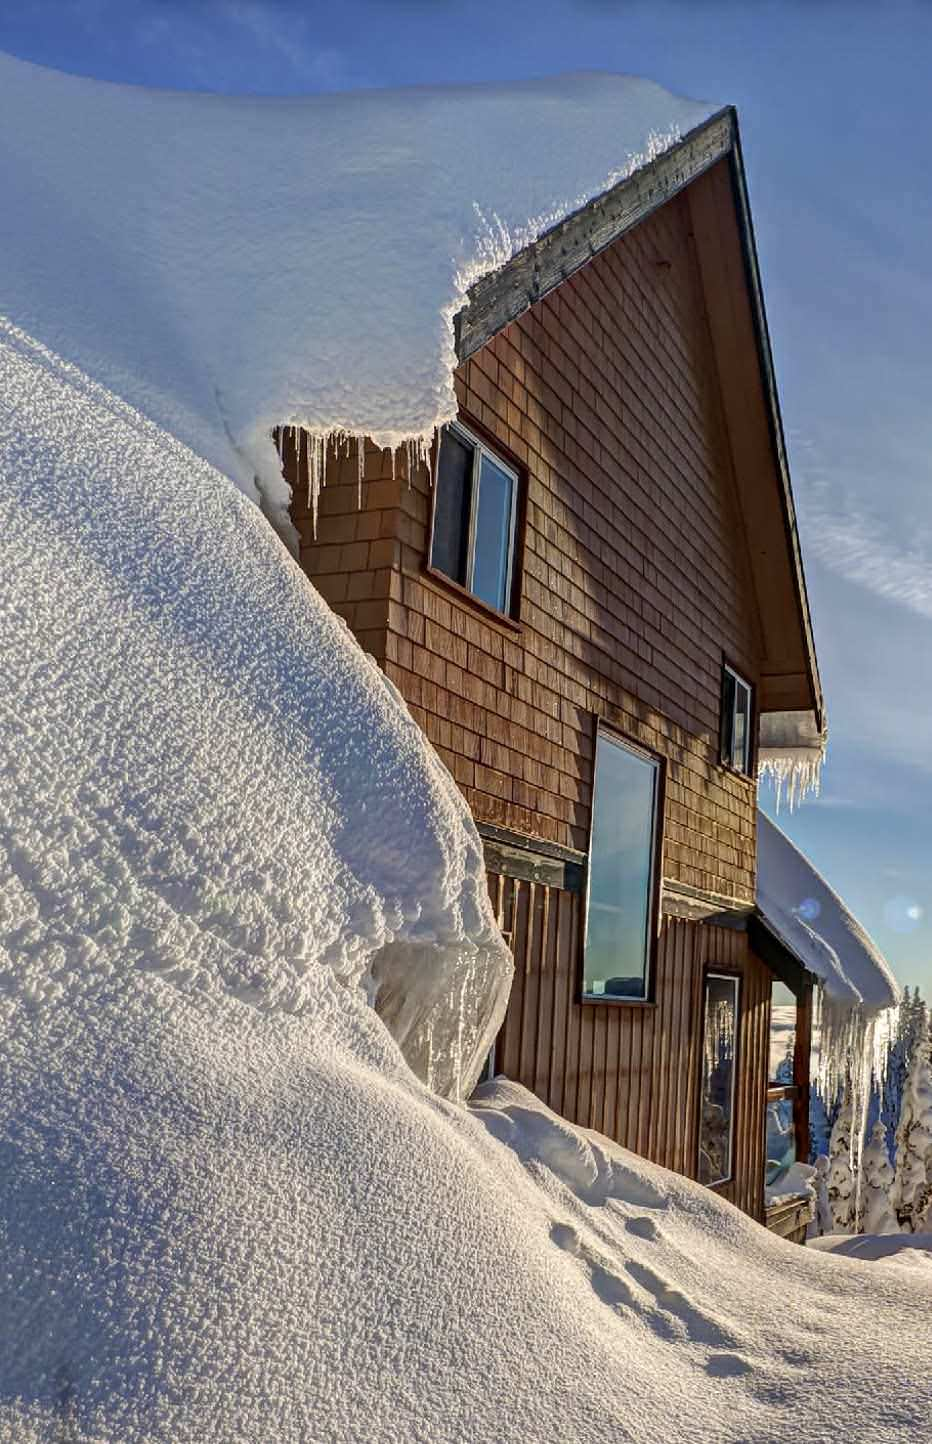 10 Important Ways To Winterize Your Home